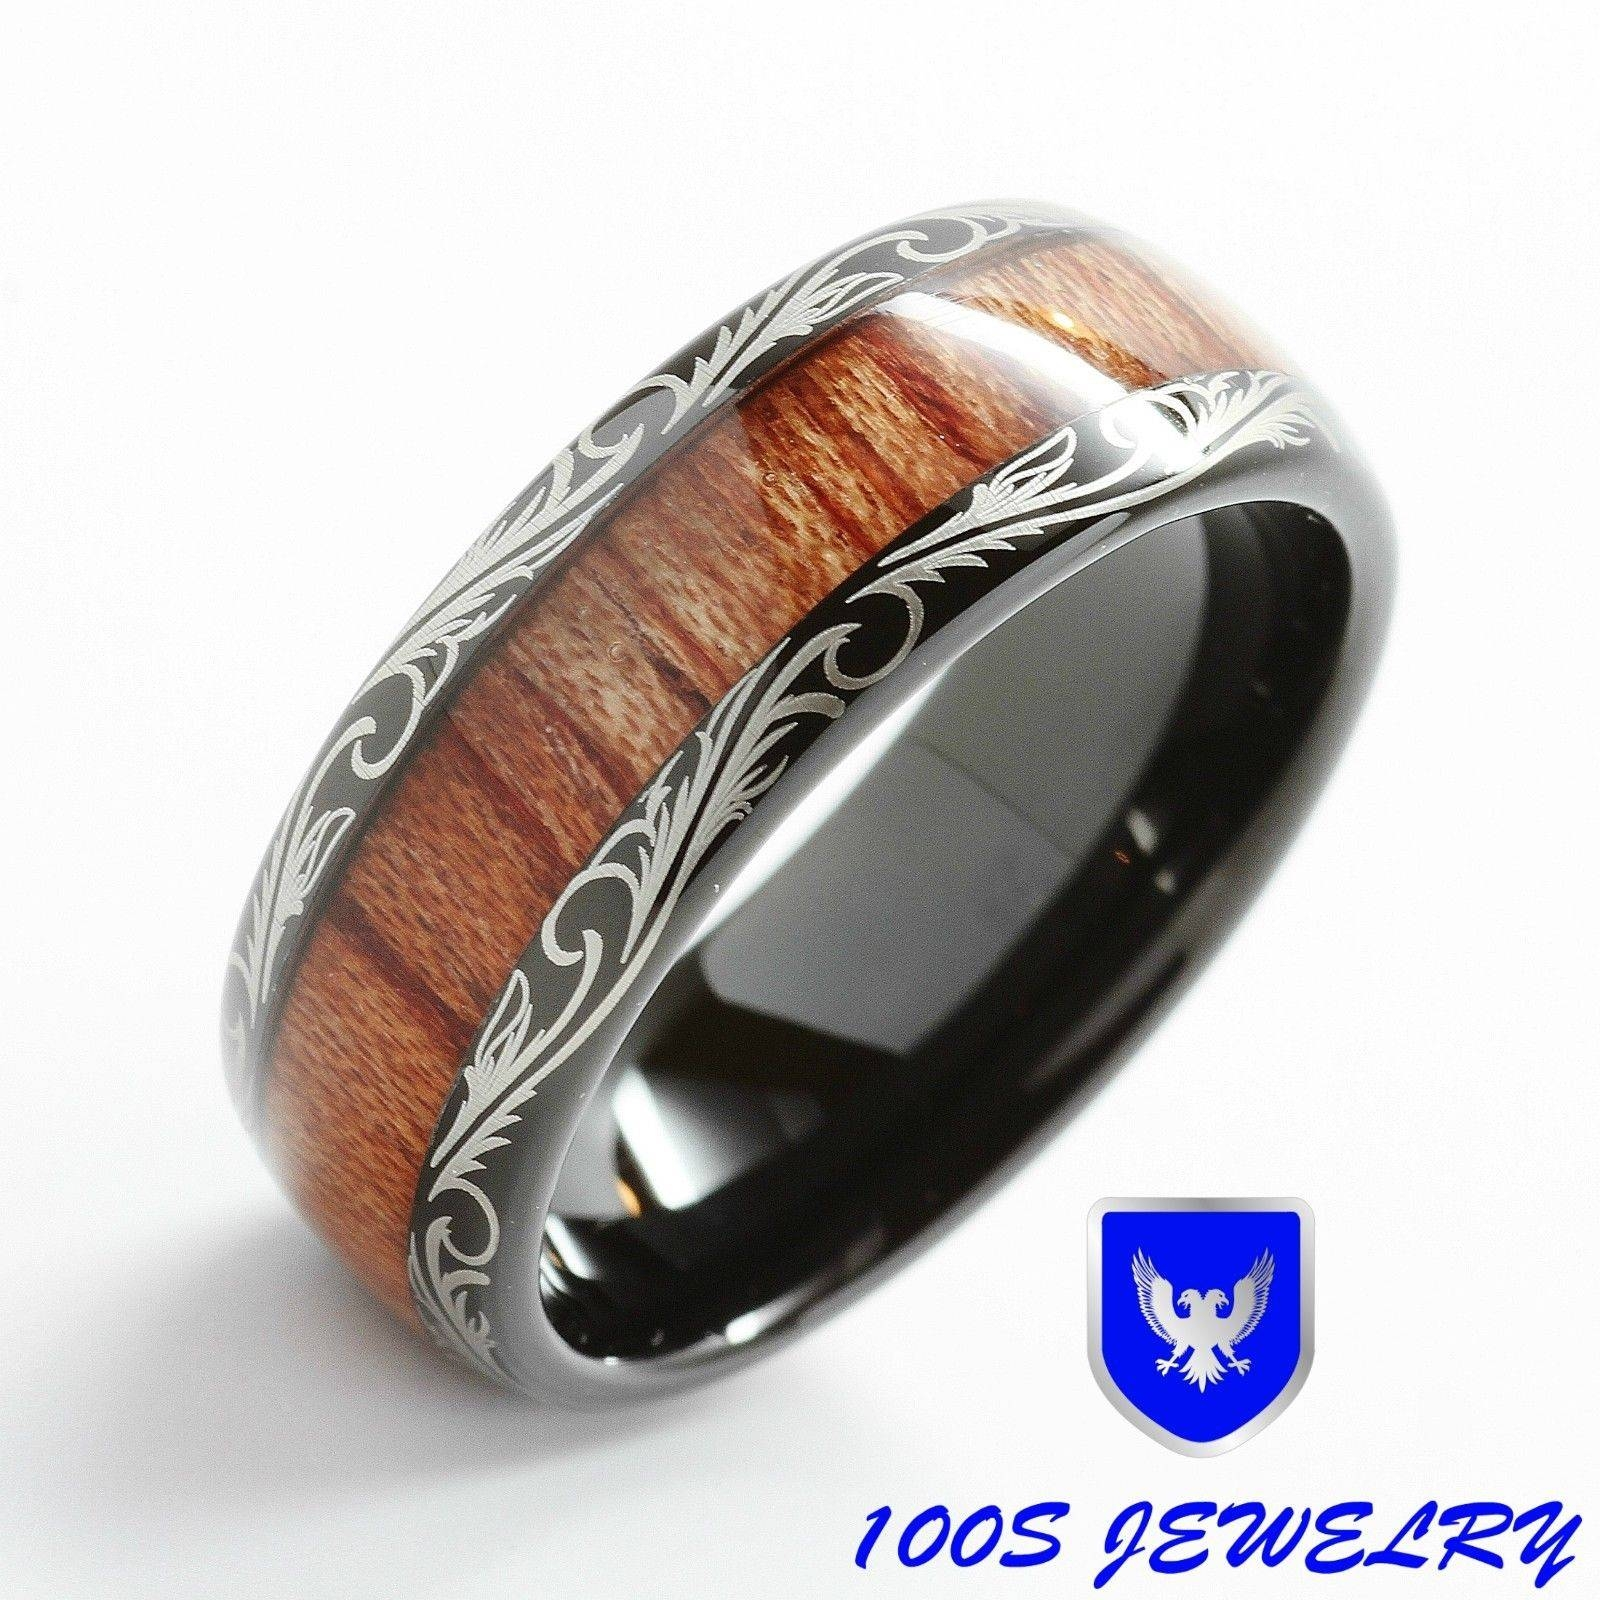 Mens Women Wedding Band Black Tungsten Ring Koa Wood Inlay Comfort With Wood Inlay Men's Wedding Bands (View 3 of 15)